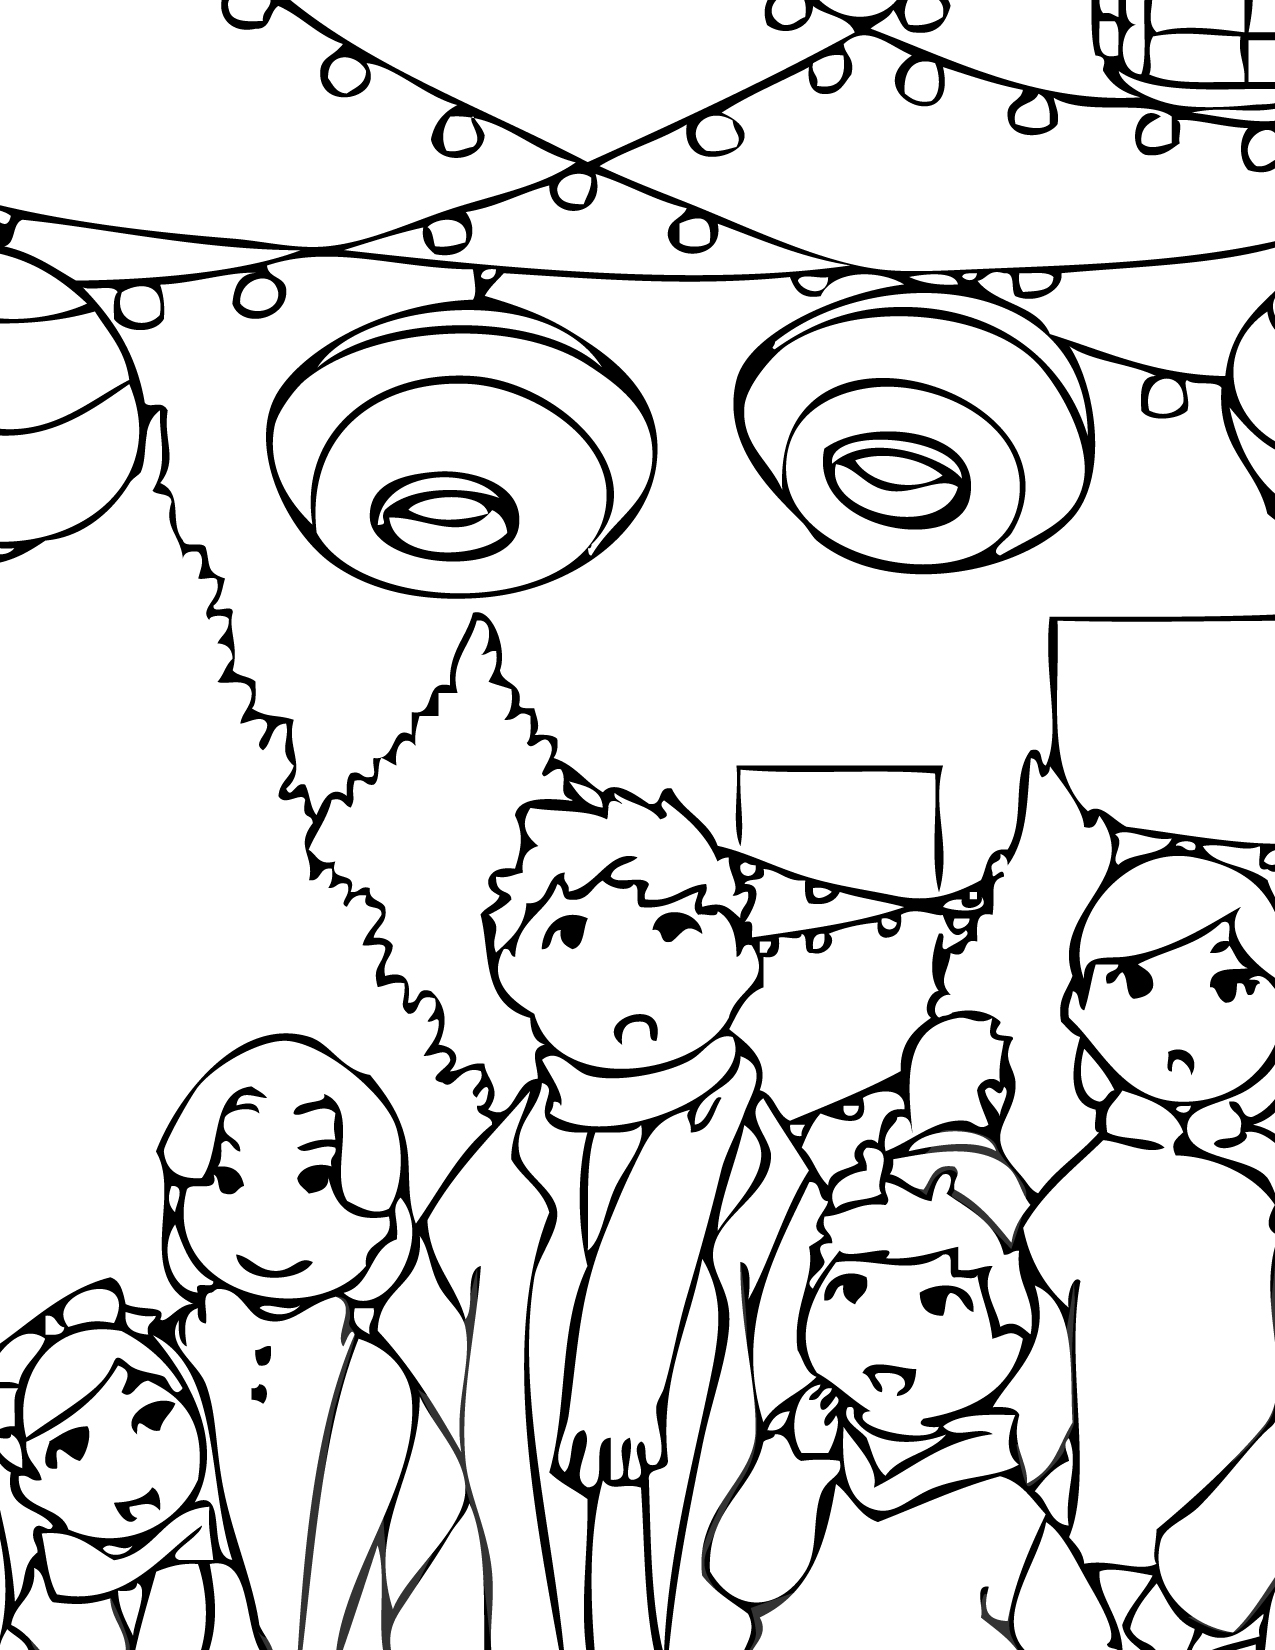 festival coloring pages - photo#32